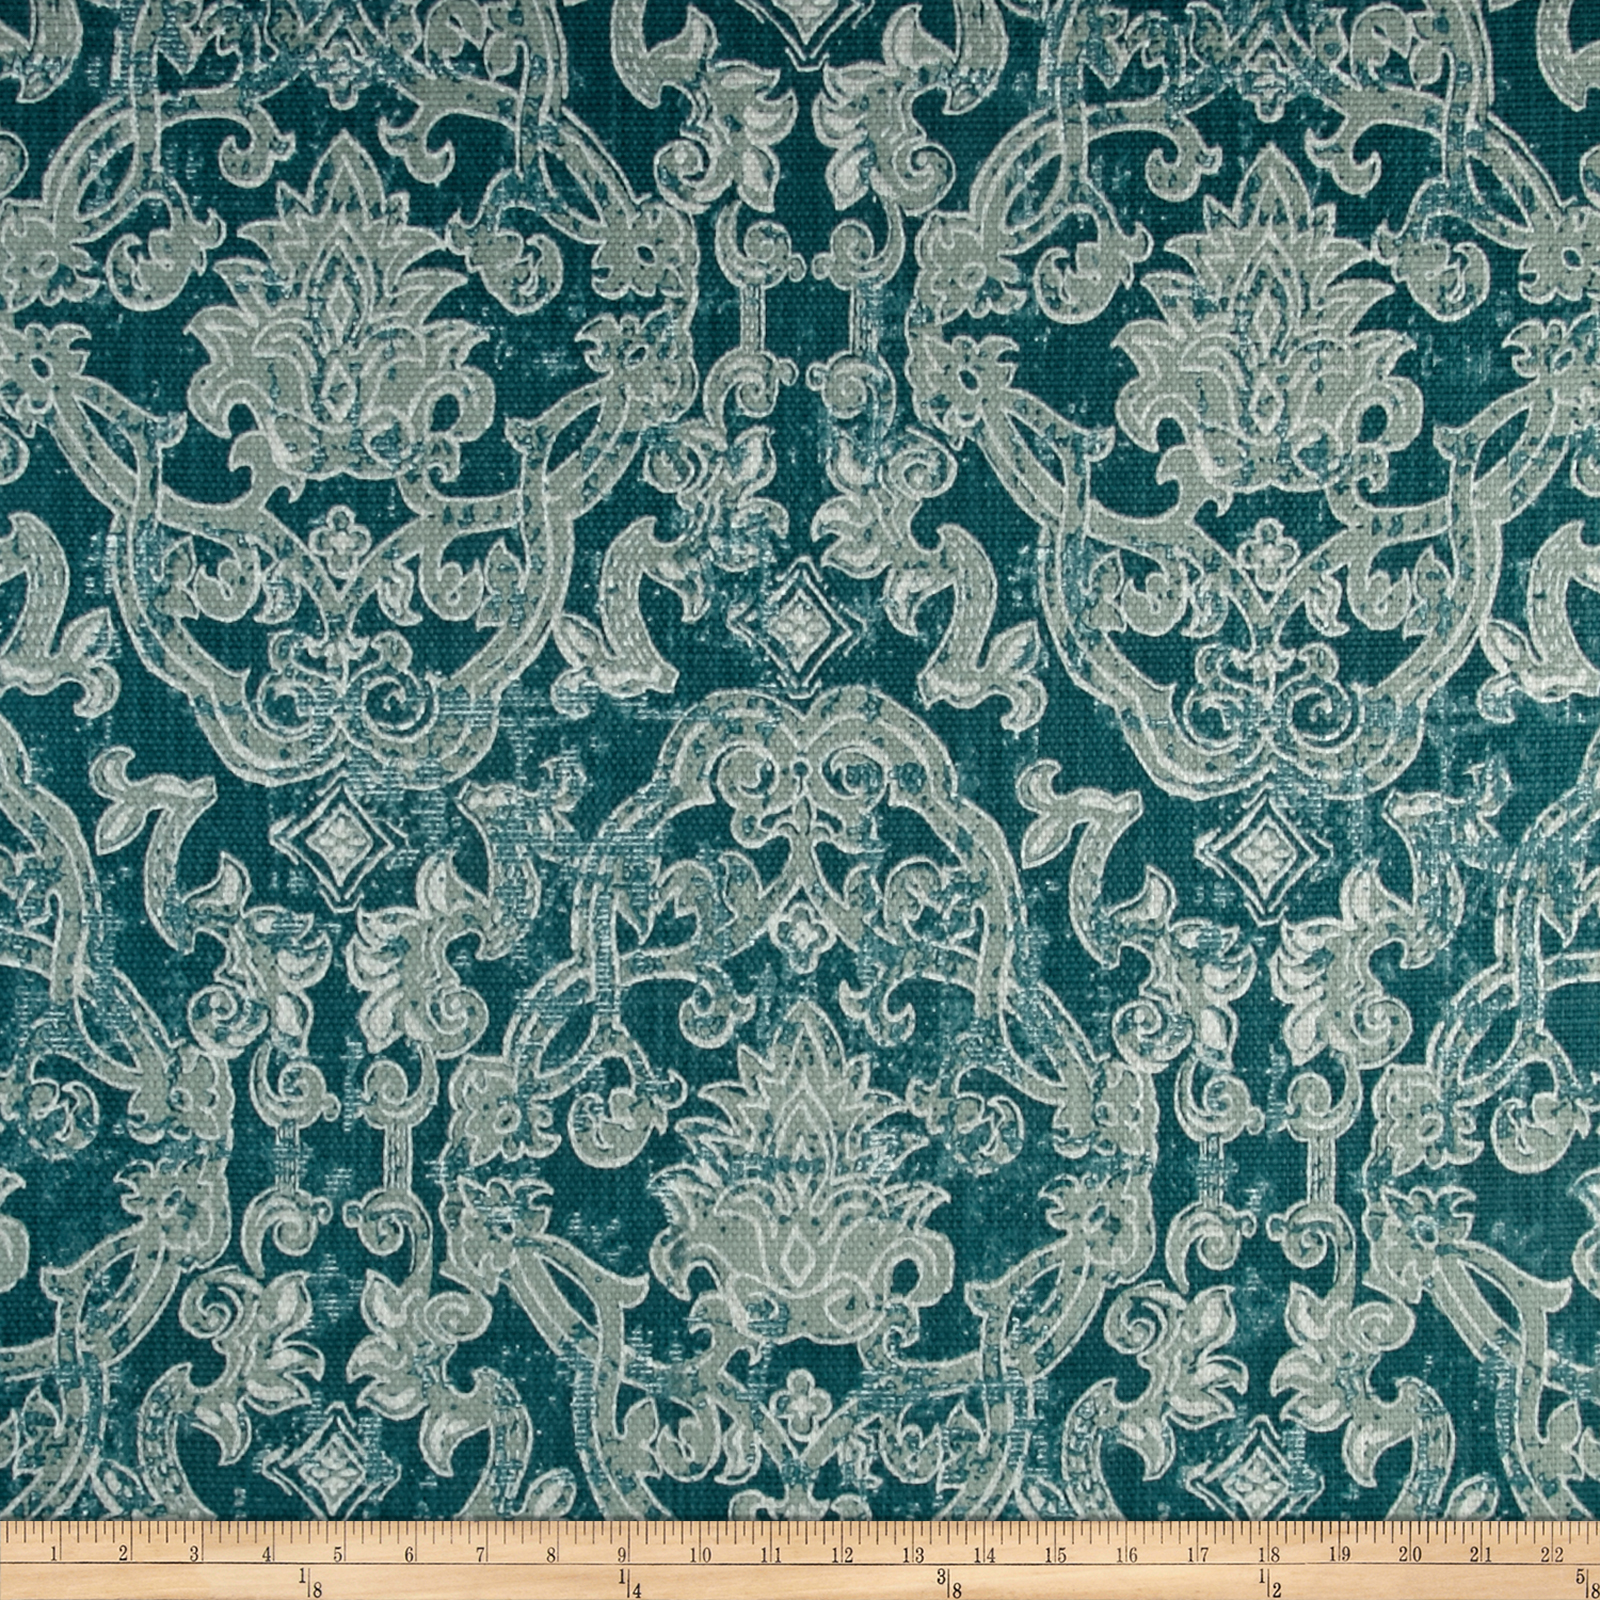 Lacefield Contessa Seagrass Beck Fabric by Lacefield in USA